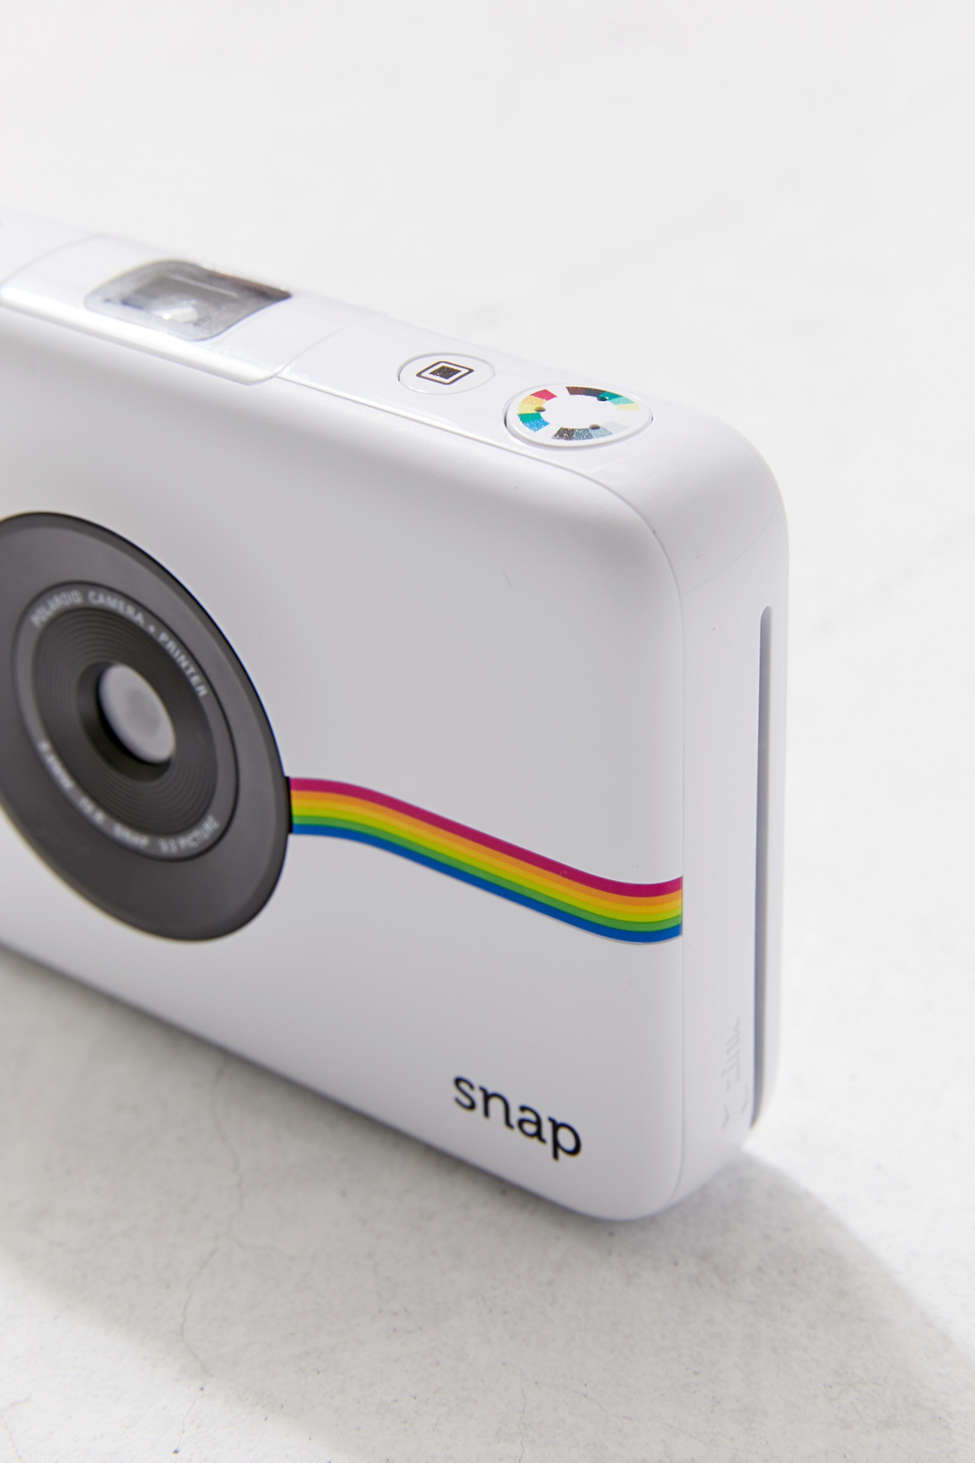 Polaroid Snap Instant Digital Camera by Polaroid